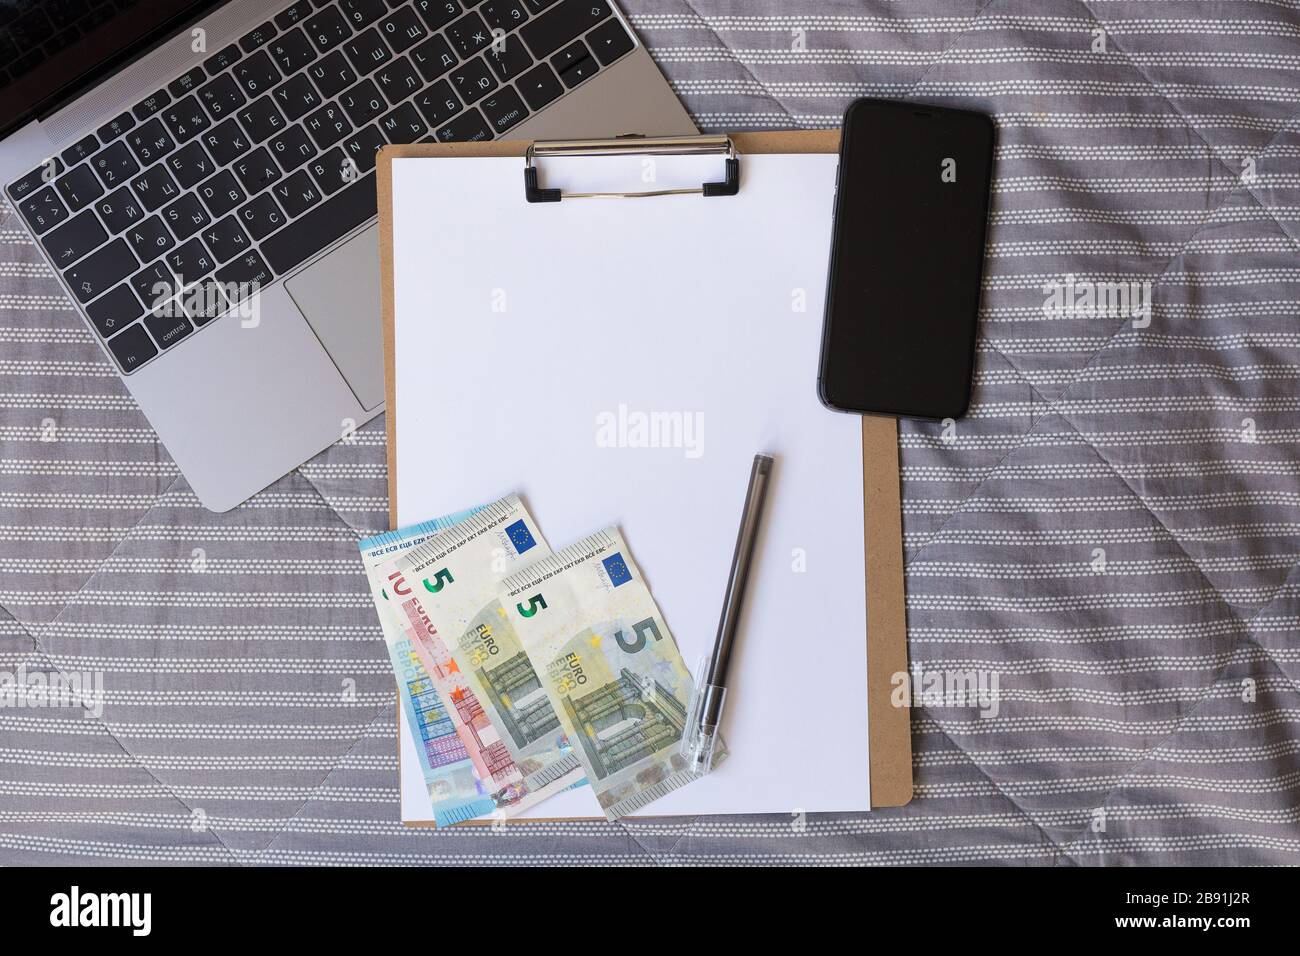 Blank notebook with pencil, cell phone and euro money on bed. Unemployment. Cash crunch. Lack of money. Job seeker.  Stock Photo